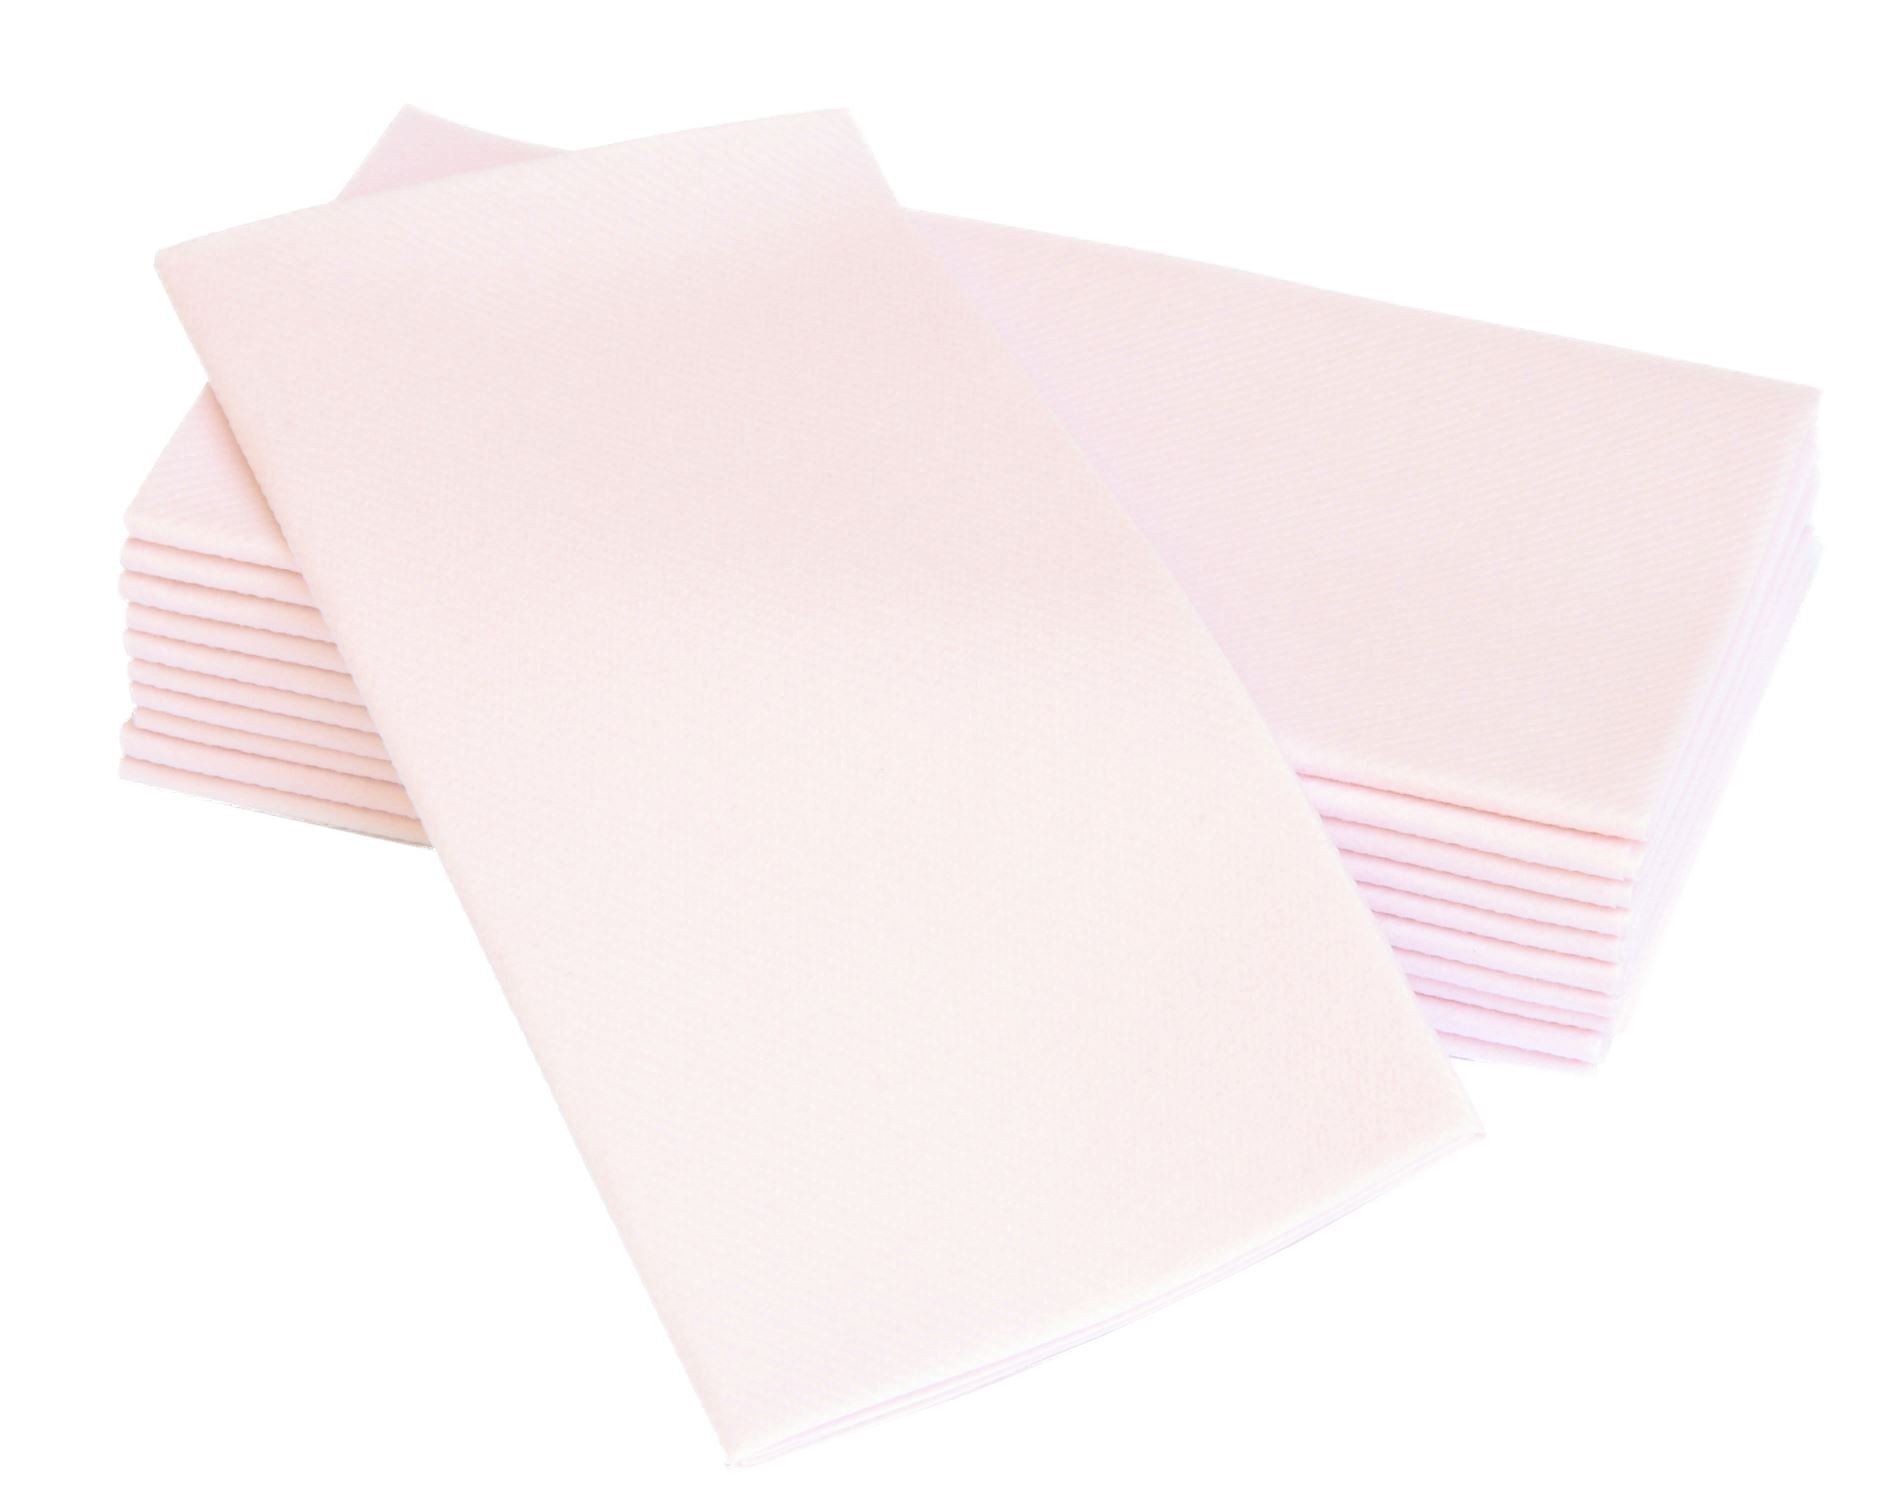 "Simulinen Dinner Napkins – Disposable, Light PINK, Cloth-Like – Elegant & Heavy Duty, Soft & Absorbent, Like Paper but Better! 16""x16"" – Box of 50"